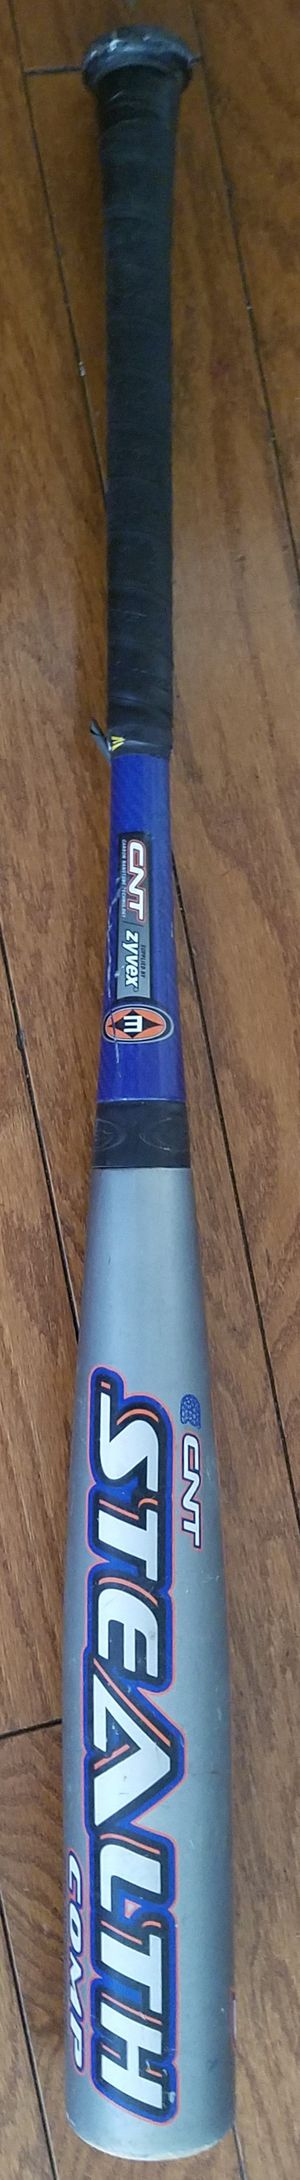 Easton Stealth baseball bat besr for Sale in Carson, CA